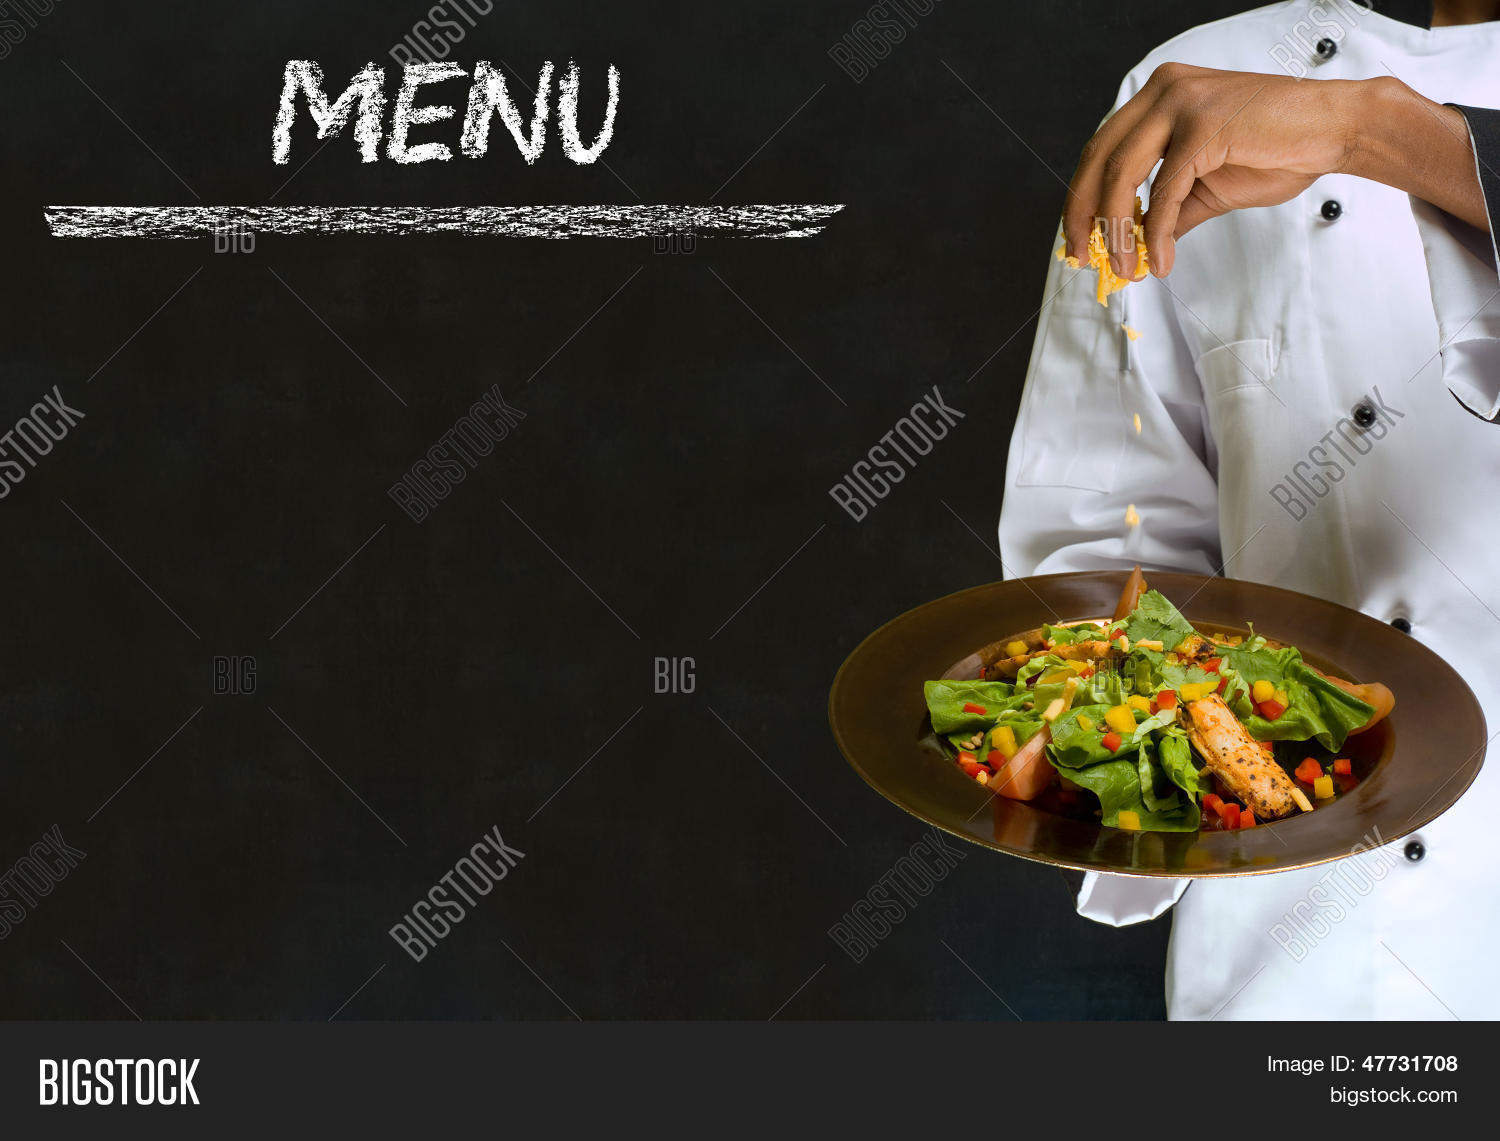 chef healthy salad image & photo (free trial) | bigstock